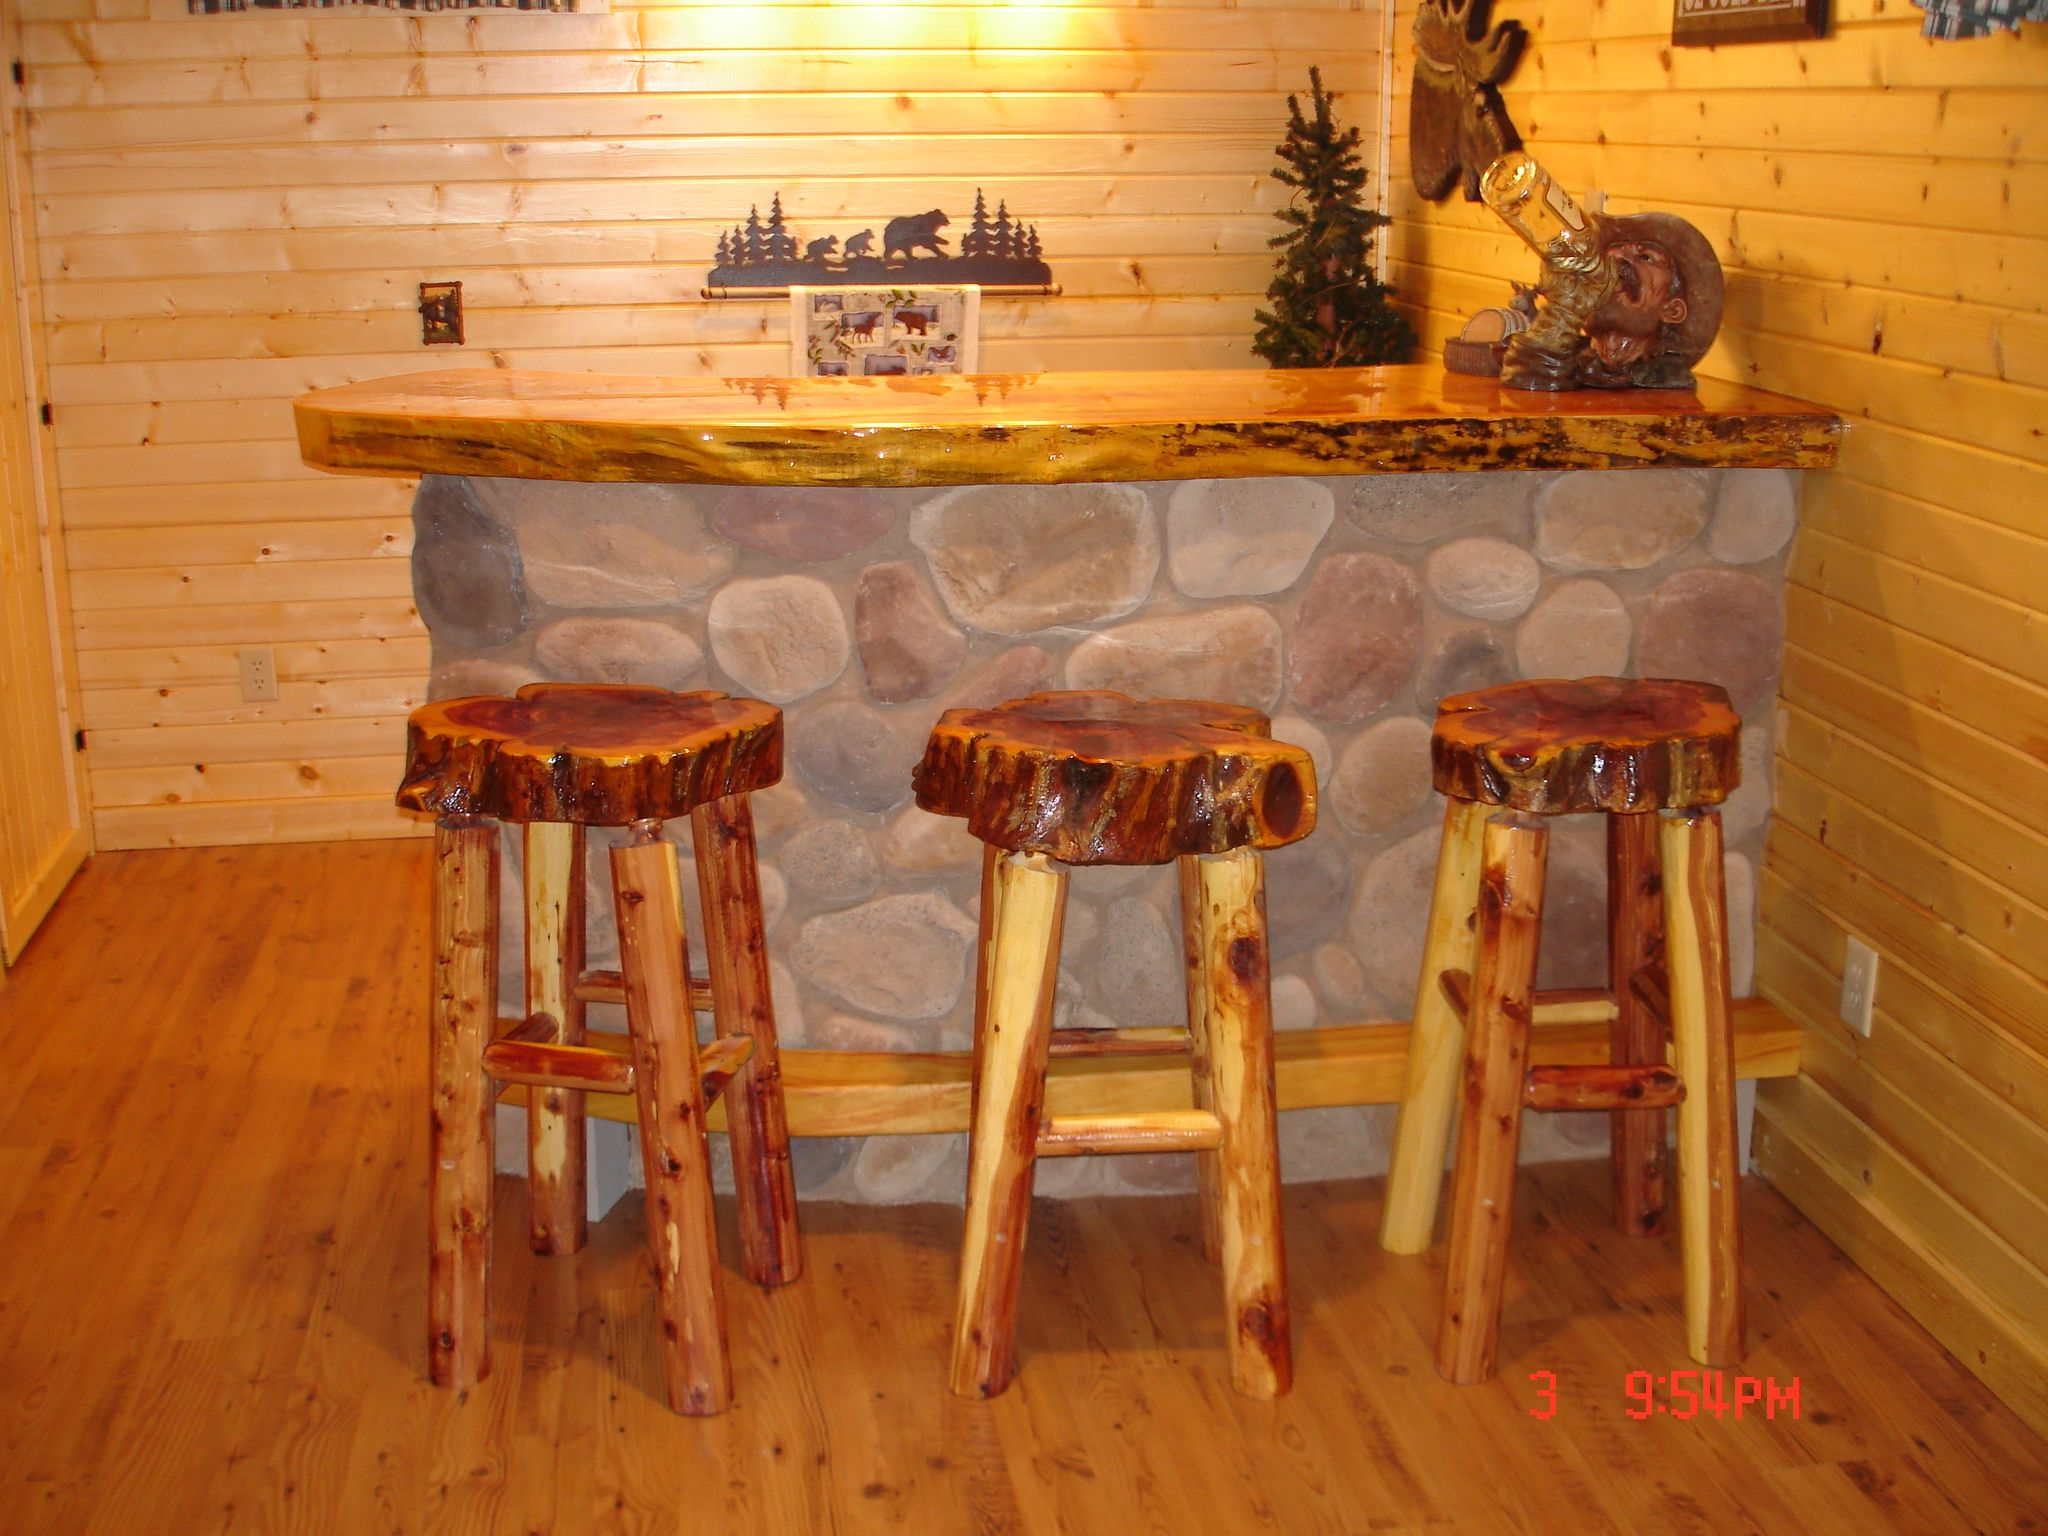 log amazing diy pin bar logs wood stoolslogs and ideas stool stools woods